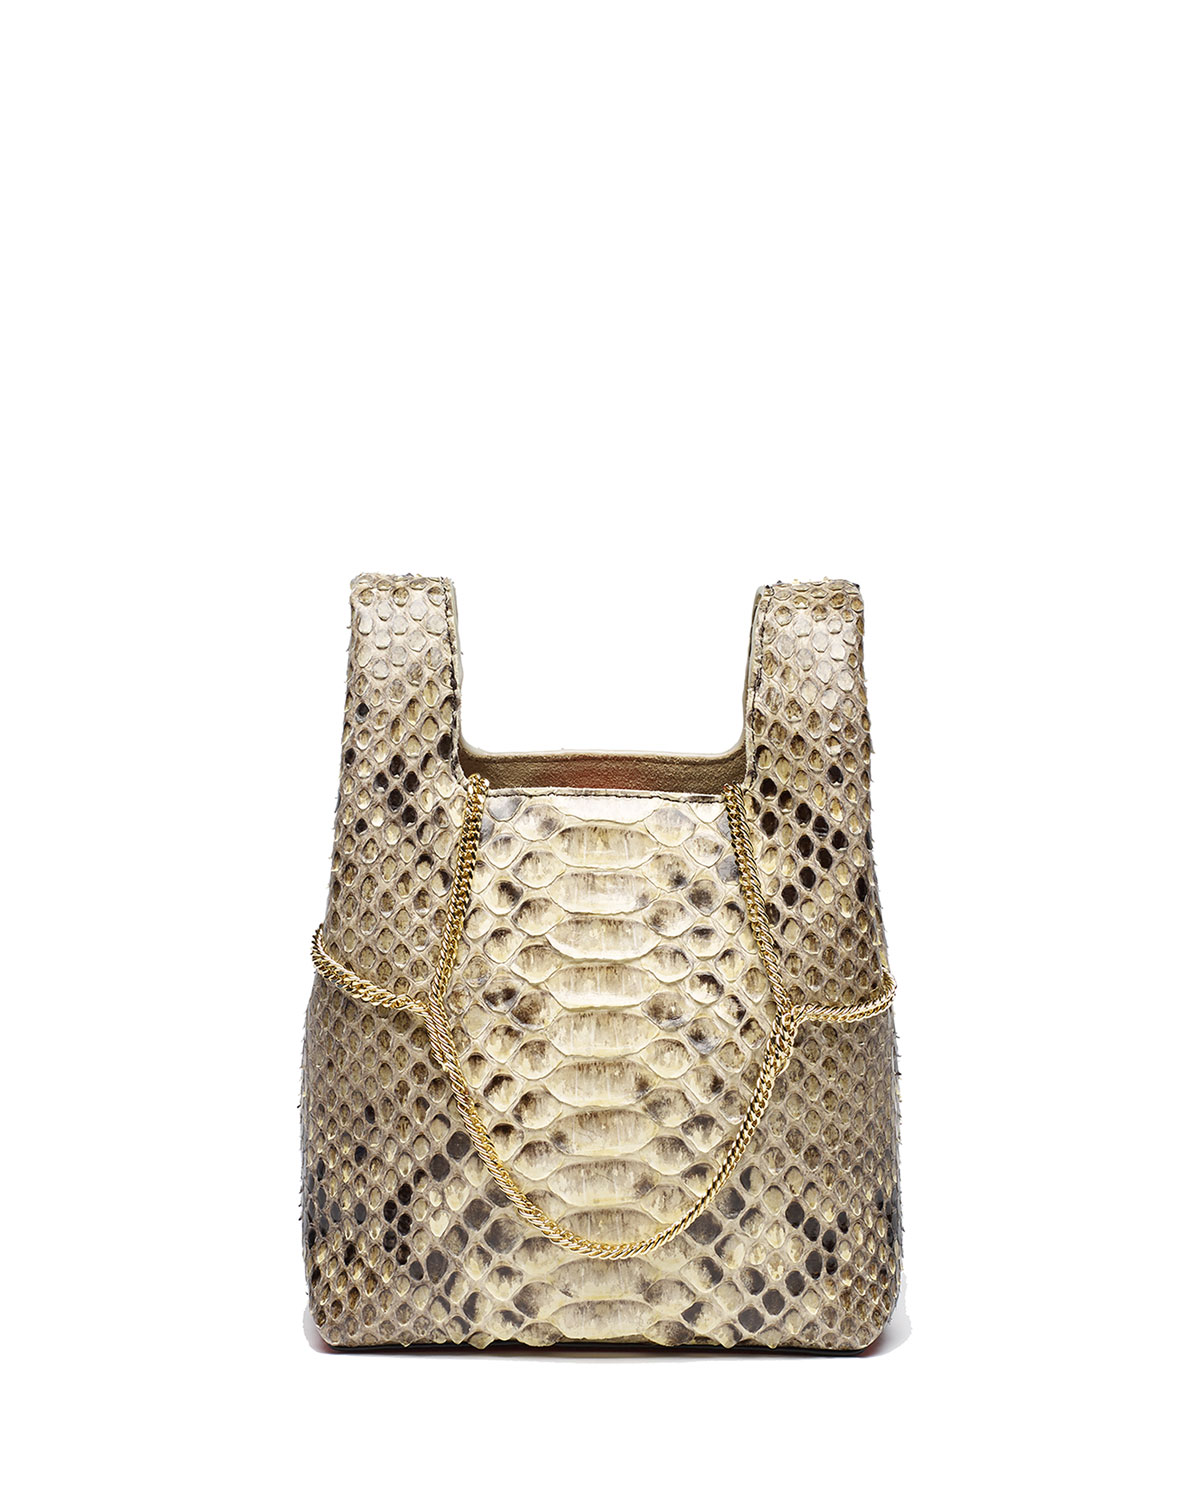 HAYWARD Mini Shopper Tote On Chains in Taupe